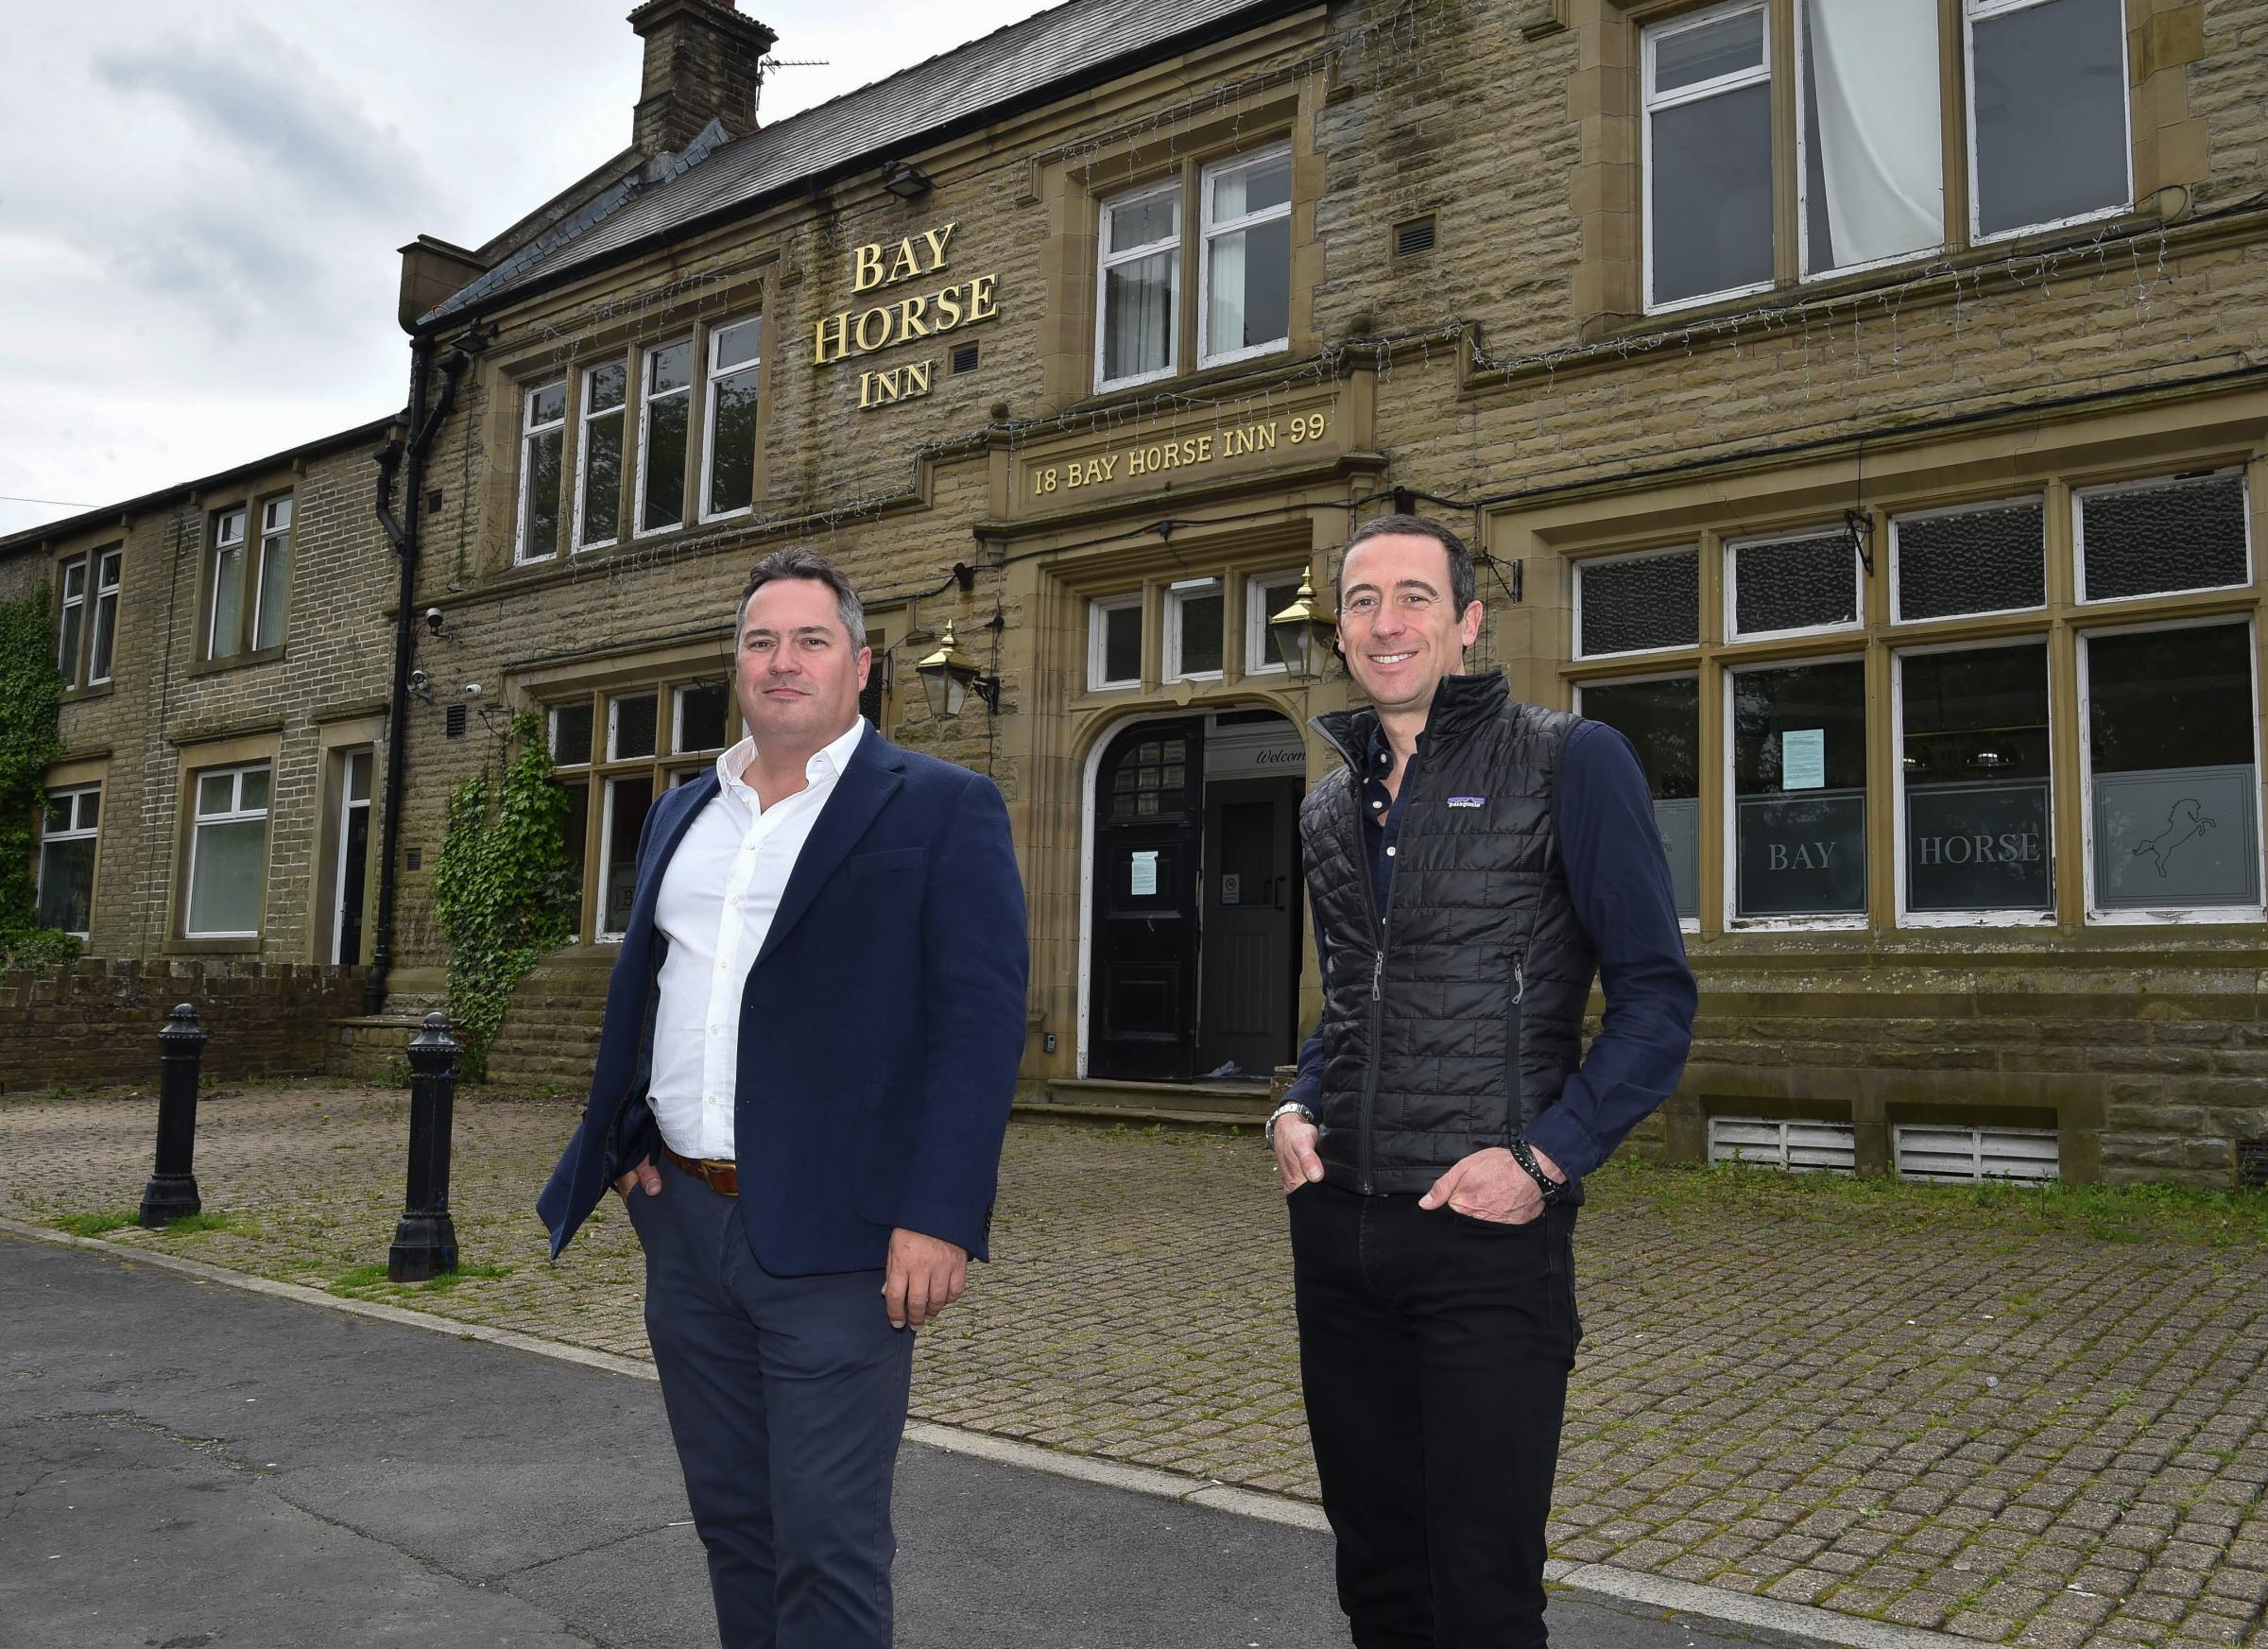 28th May 2021 The Bay Horse, 17 Church Square, Worsthorne, Burnley BB10 3NH L-R Chris Nevin - Director/ Owner / Jon Nevin - Director/ Owner MANDATORY CREDIT: Bernard Platt For editorial use only. Copyright remains property of Bernard Platt Wigan